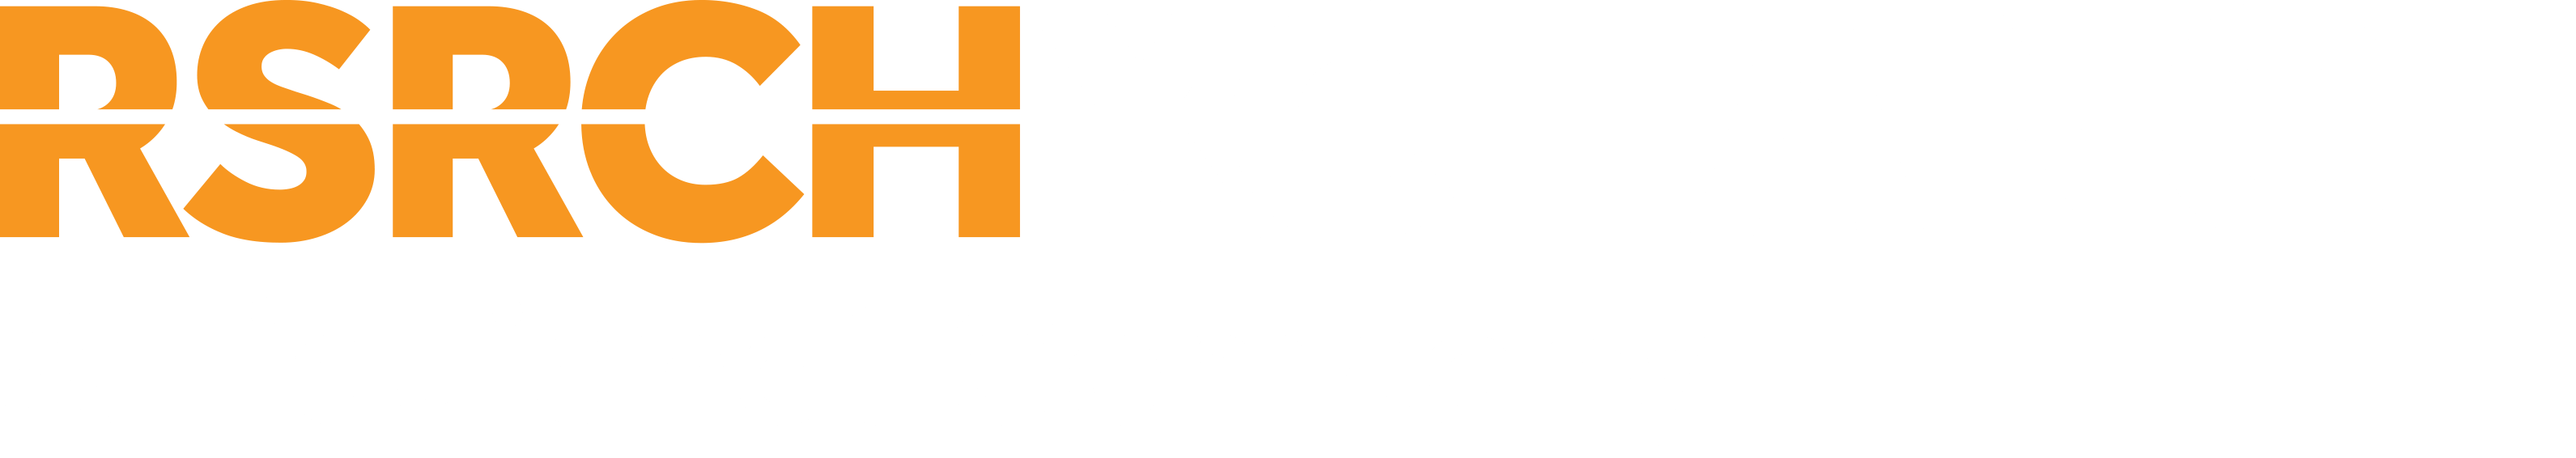 PitchBook and RSRCHXchange to Create Comprehensive Marketplace for Private and Public Financial Research